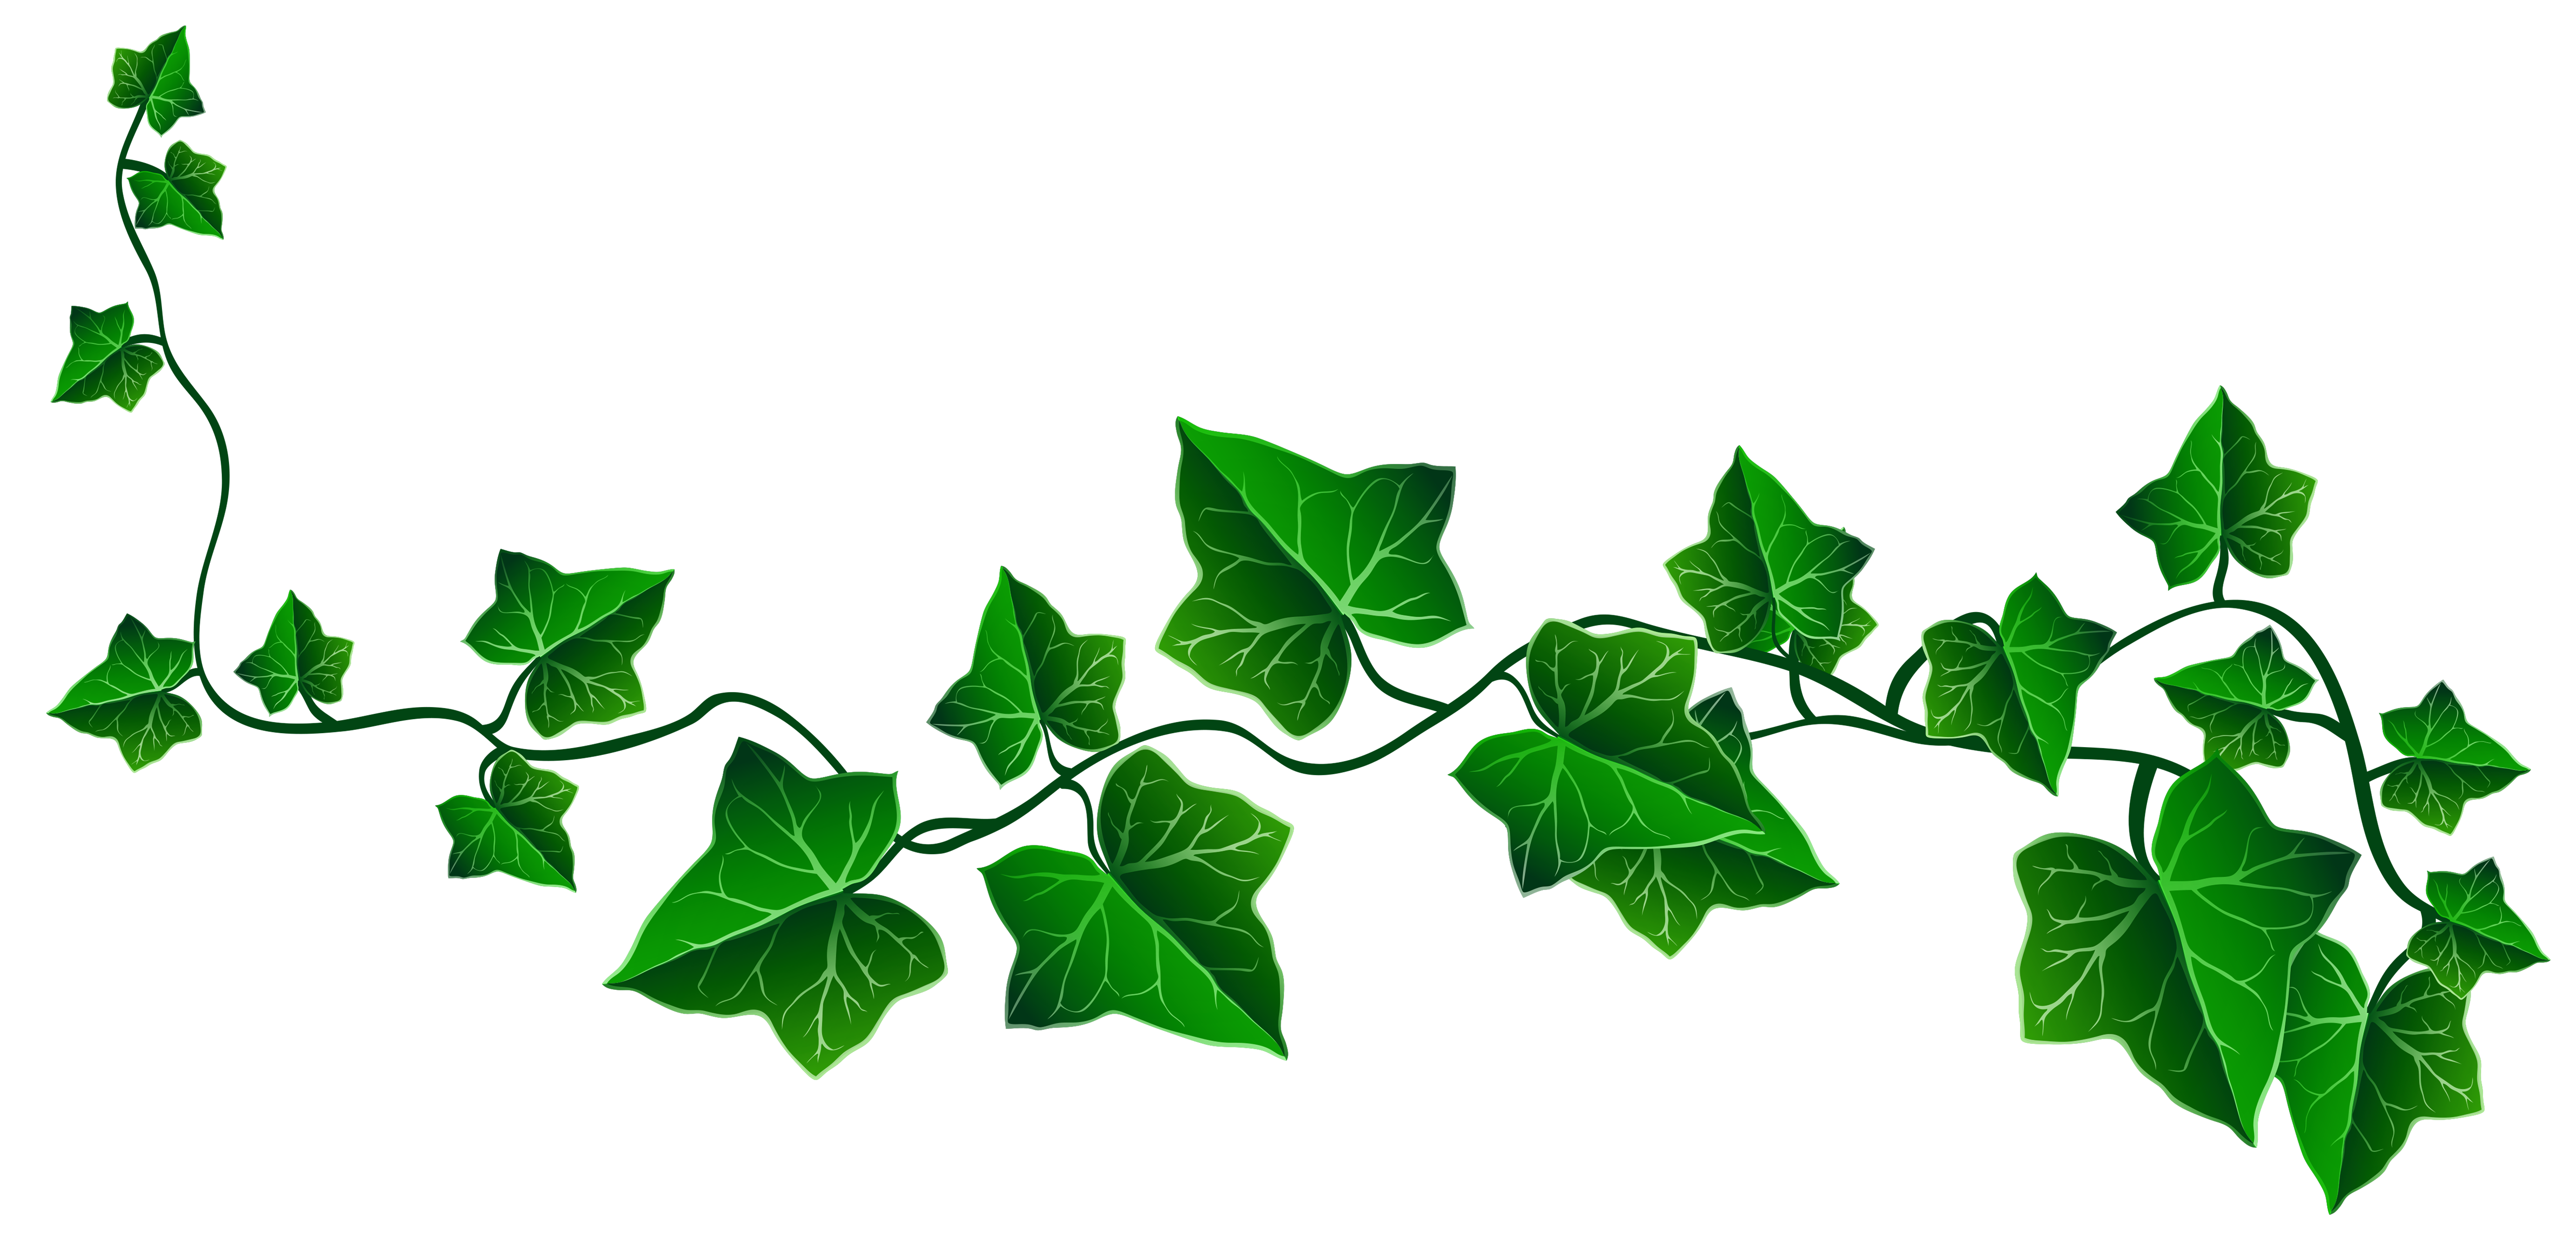 Vines clipart. Free ivy cliparts download